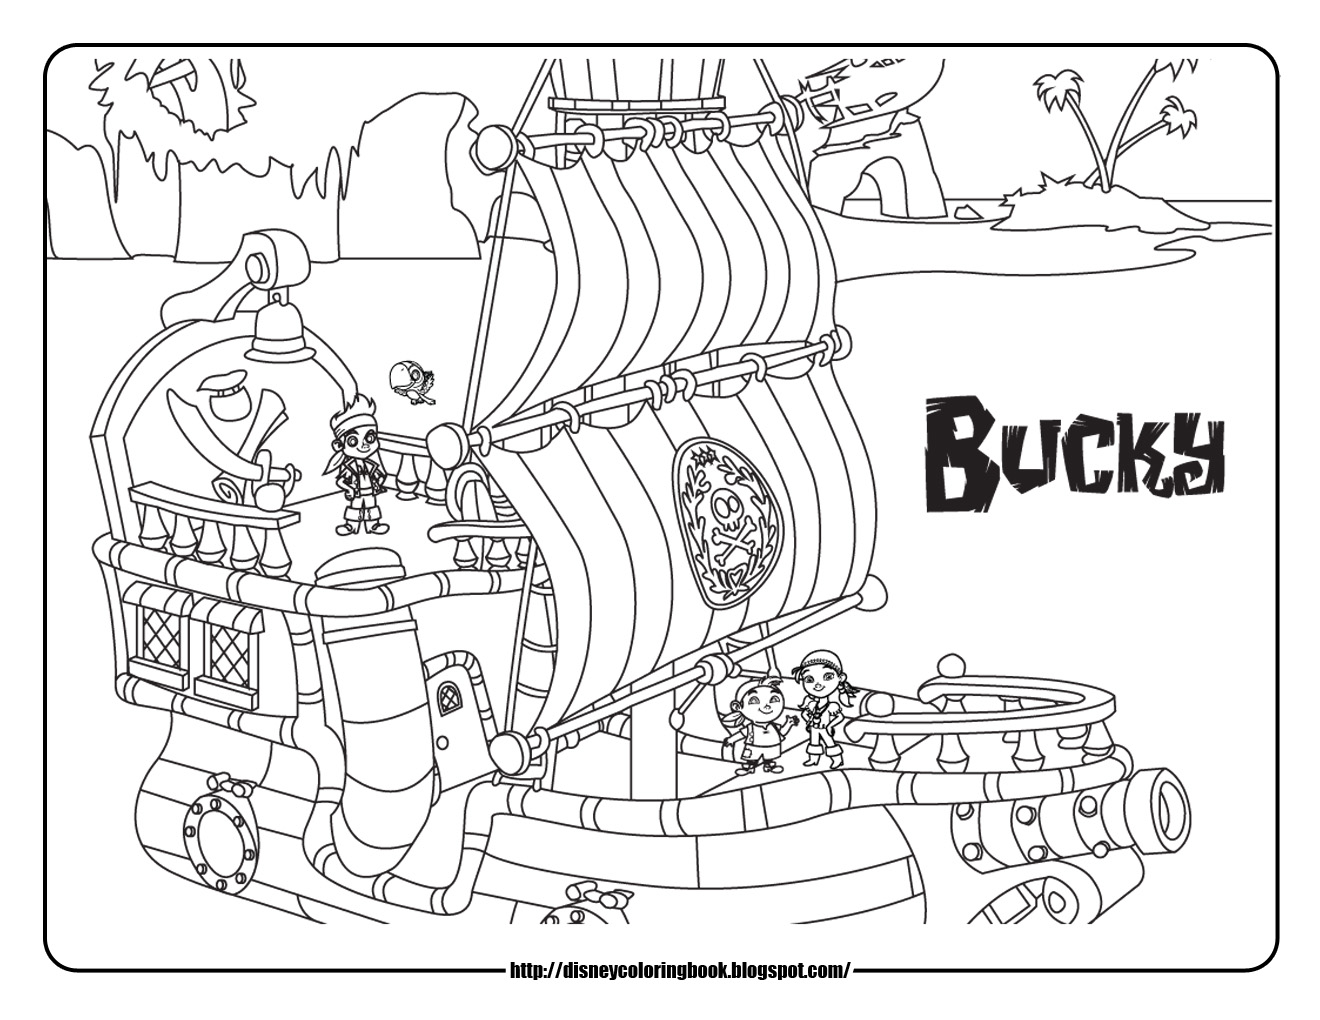 jake and the neverland pirates 2 free disney coloring sheets